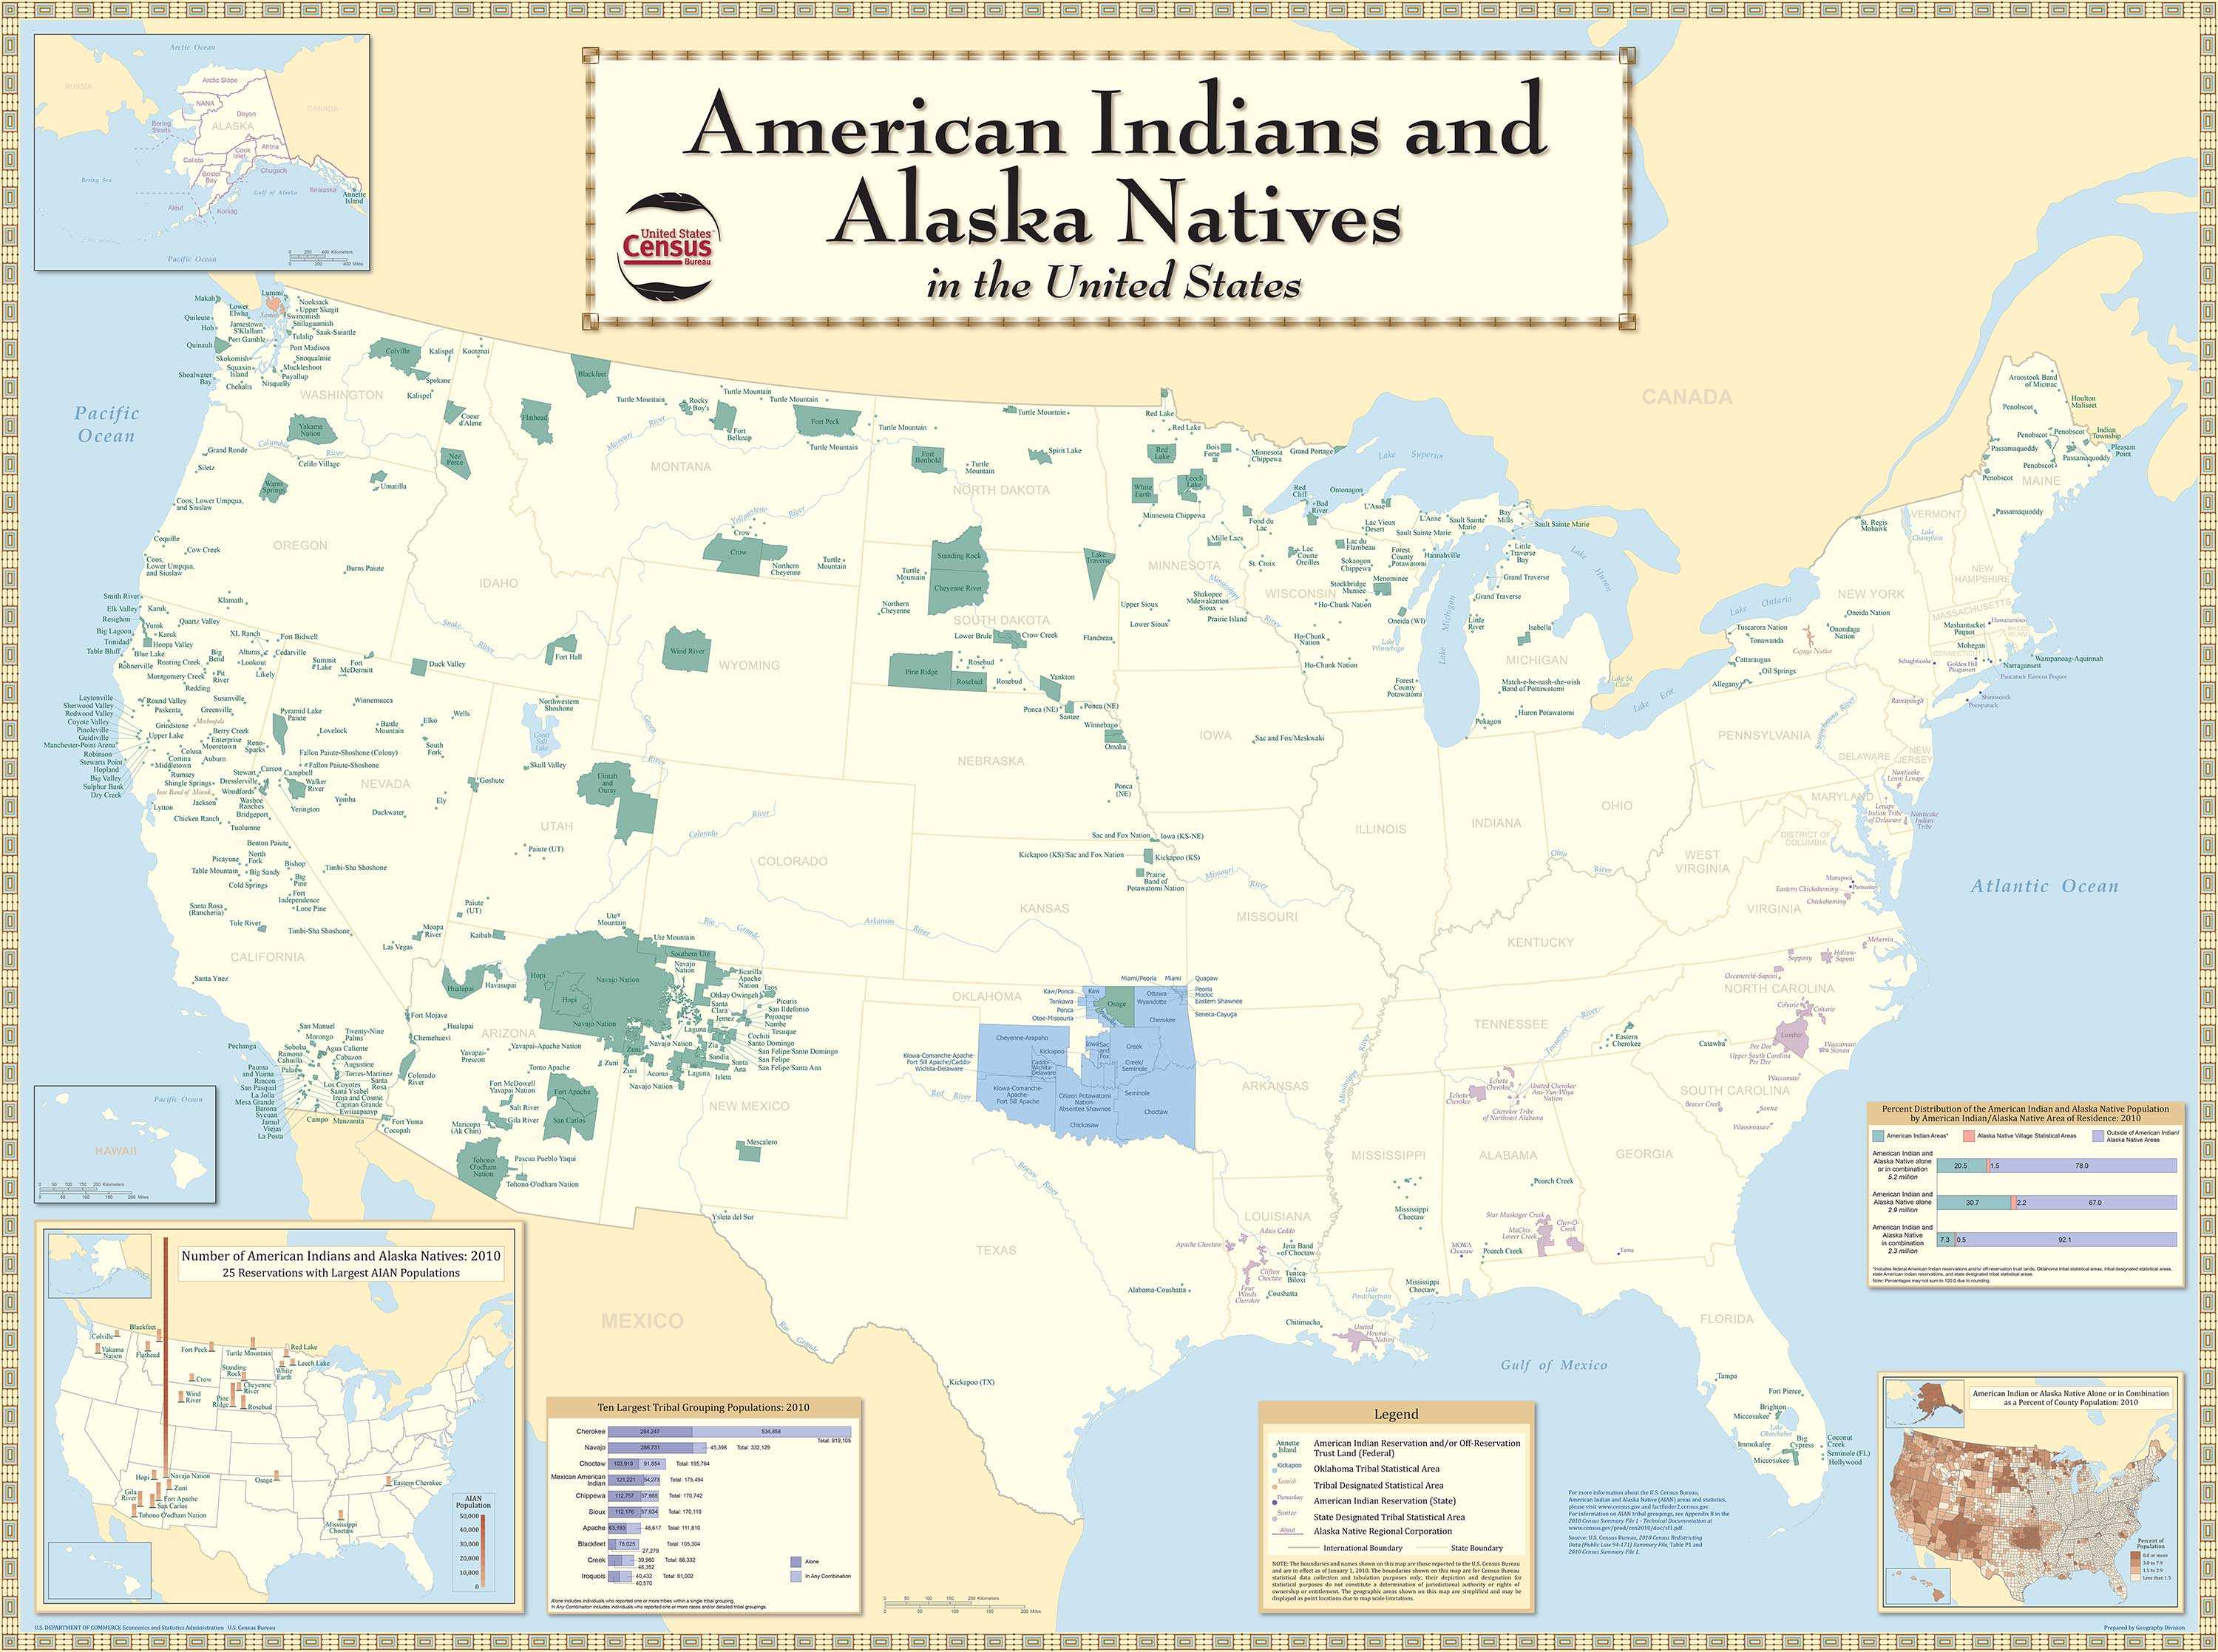 censusscope demographic maps american indian population maps of